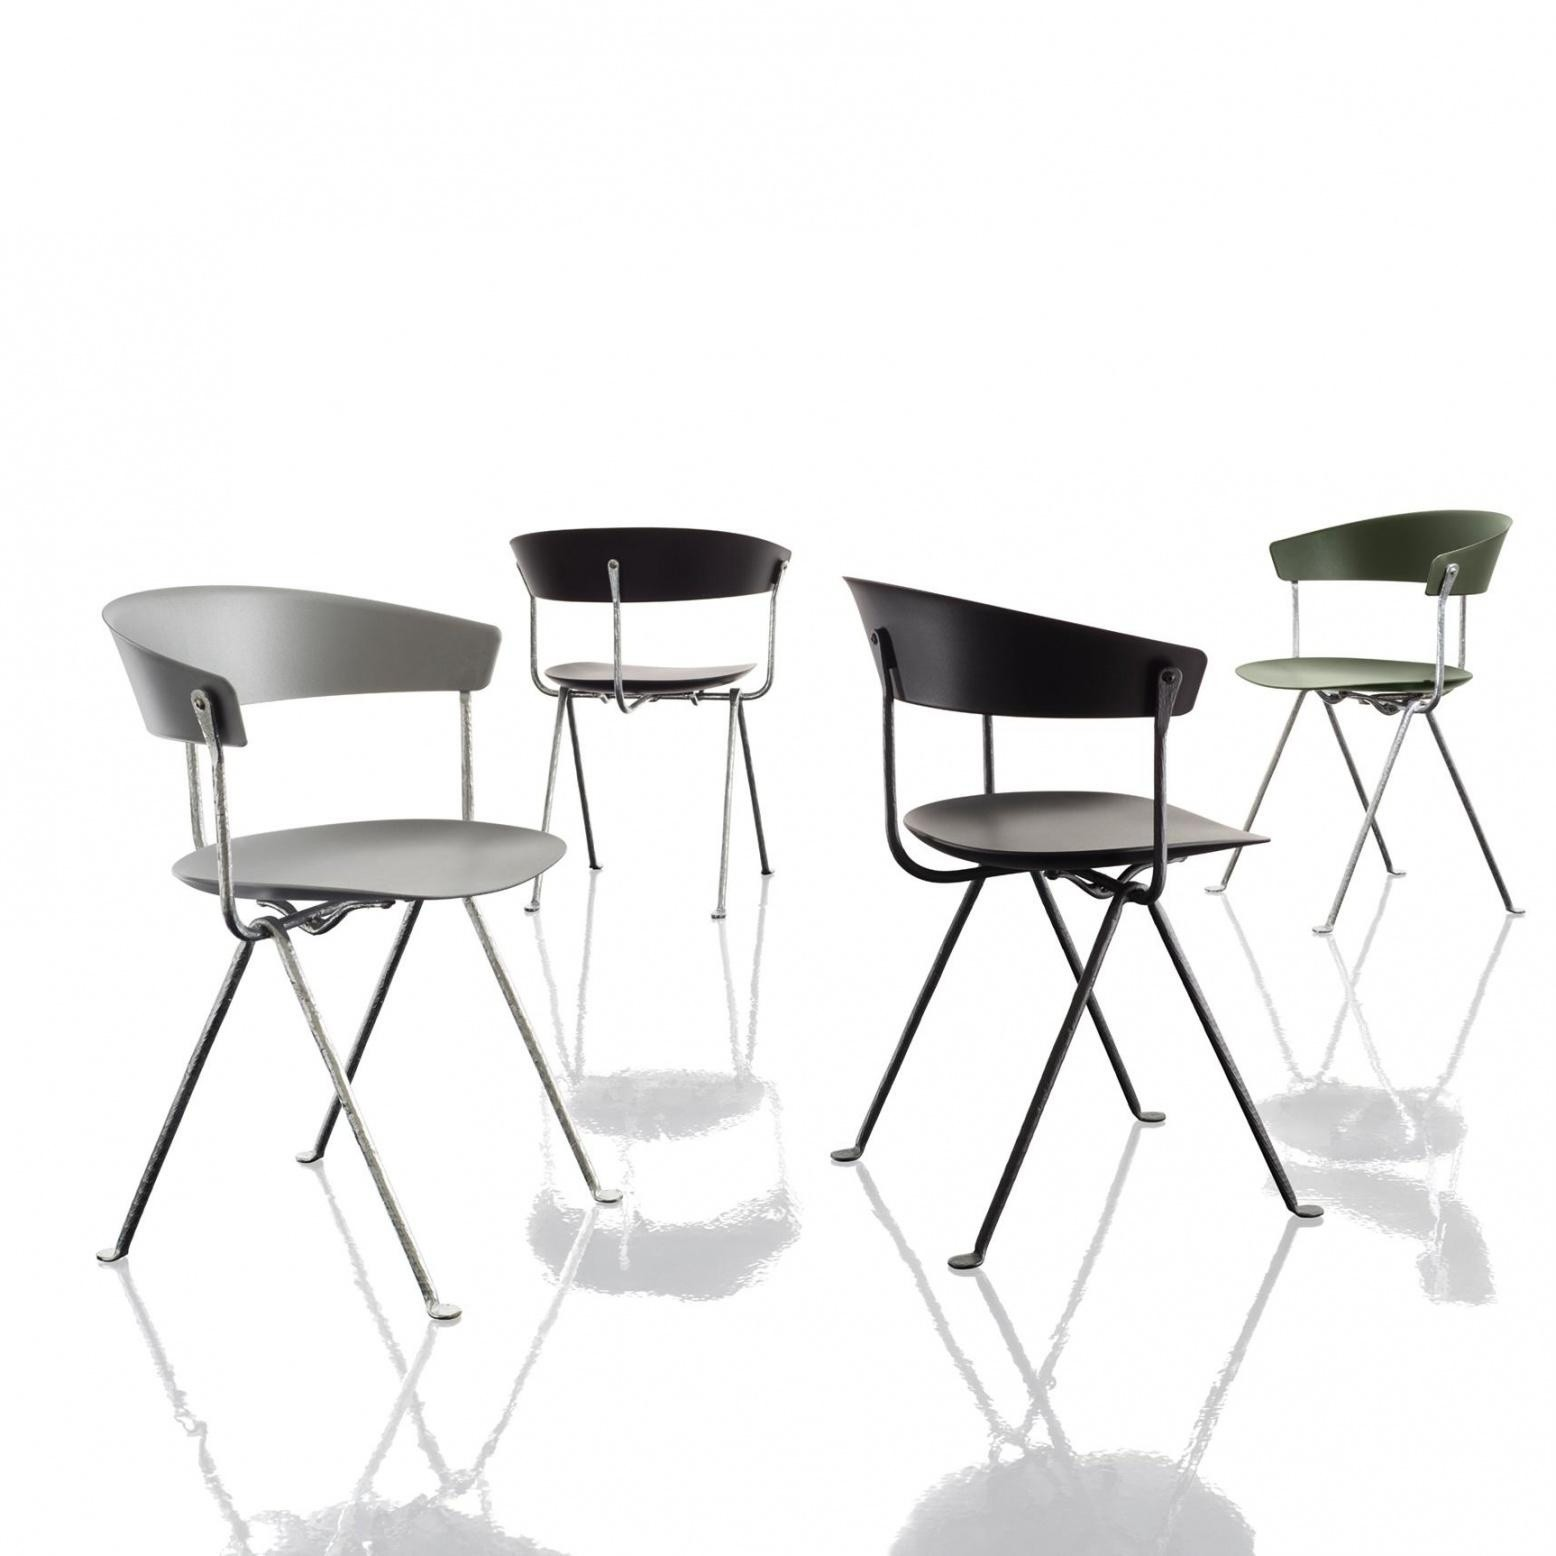 magis officina chair frame black ambientedirect  exclusive sale only for styleclub members